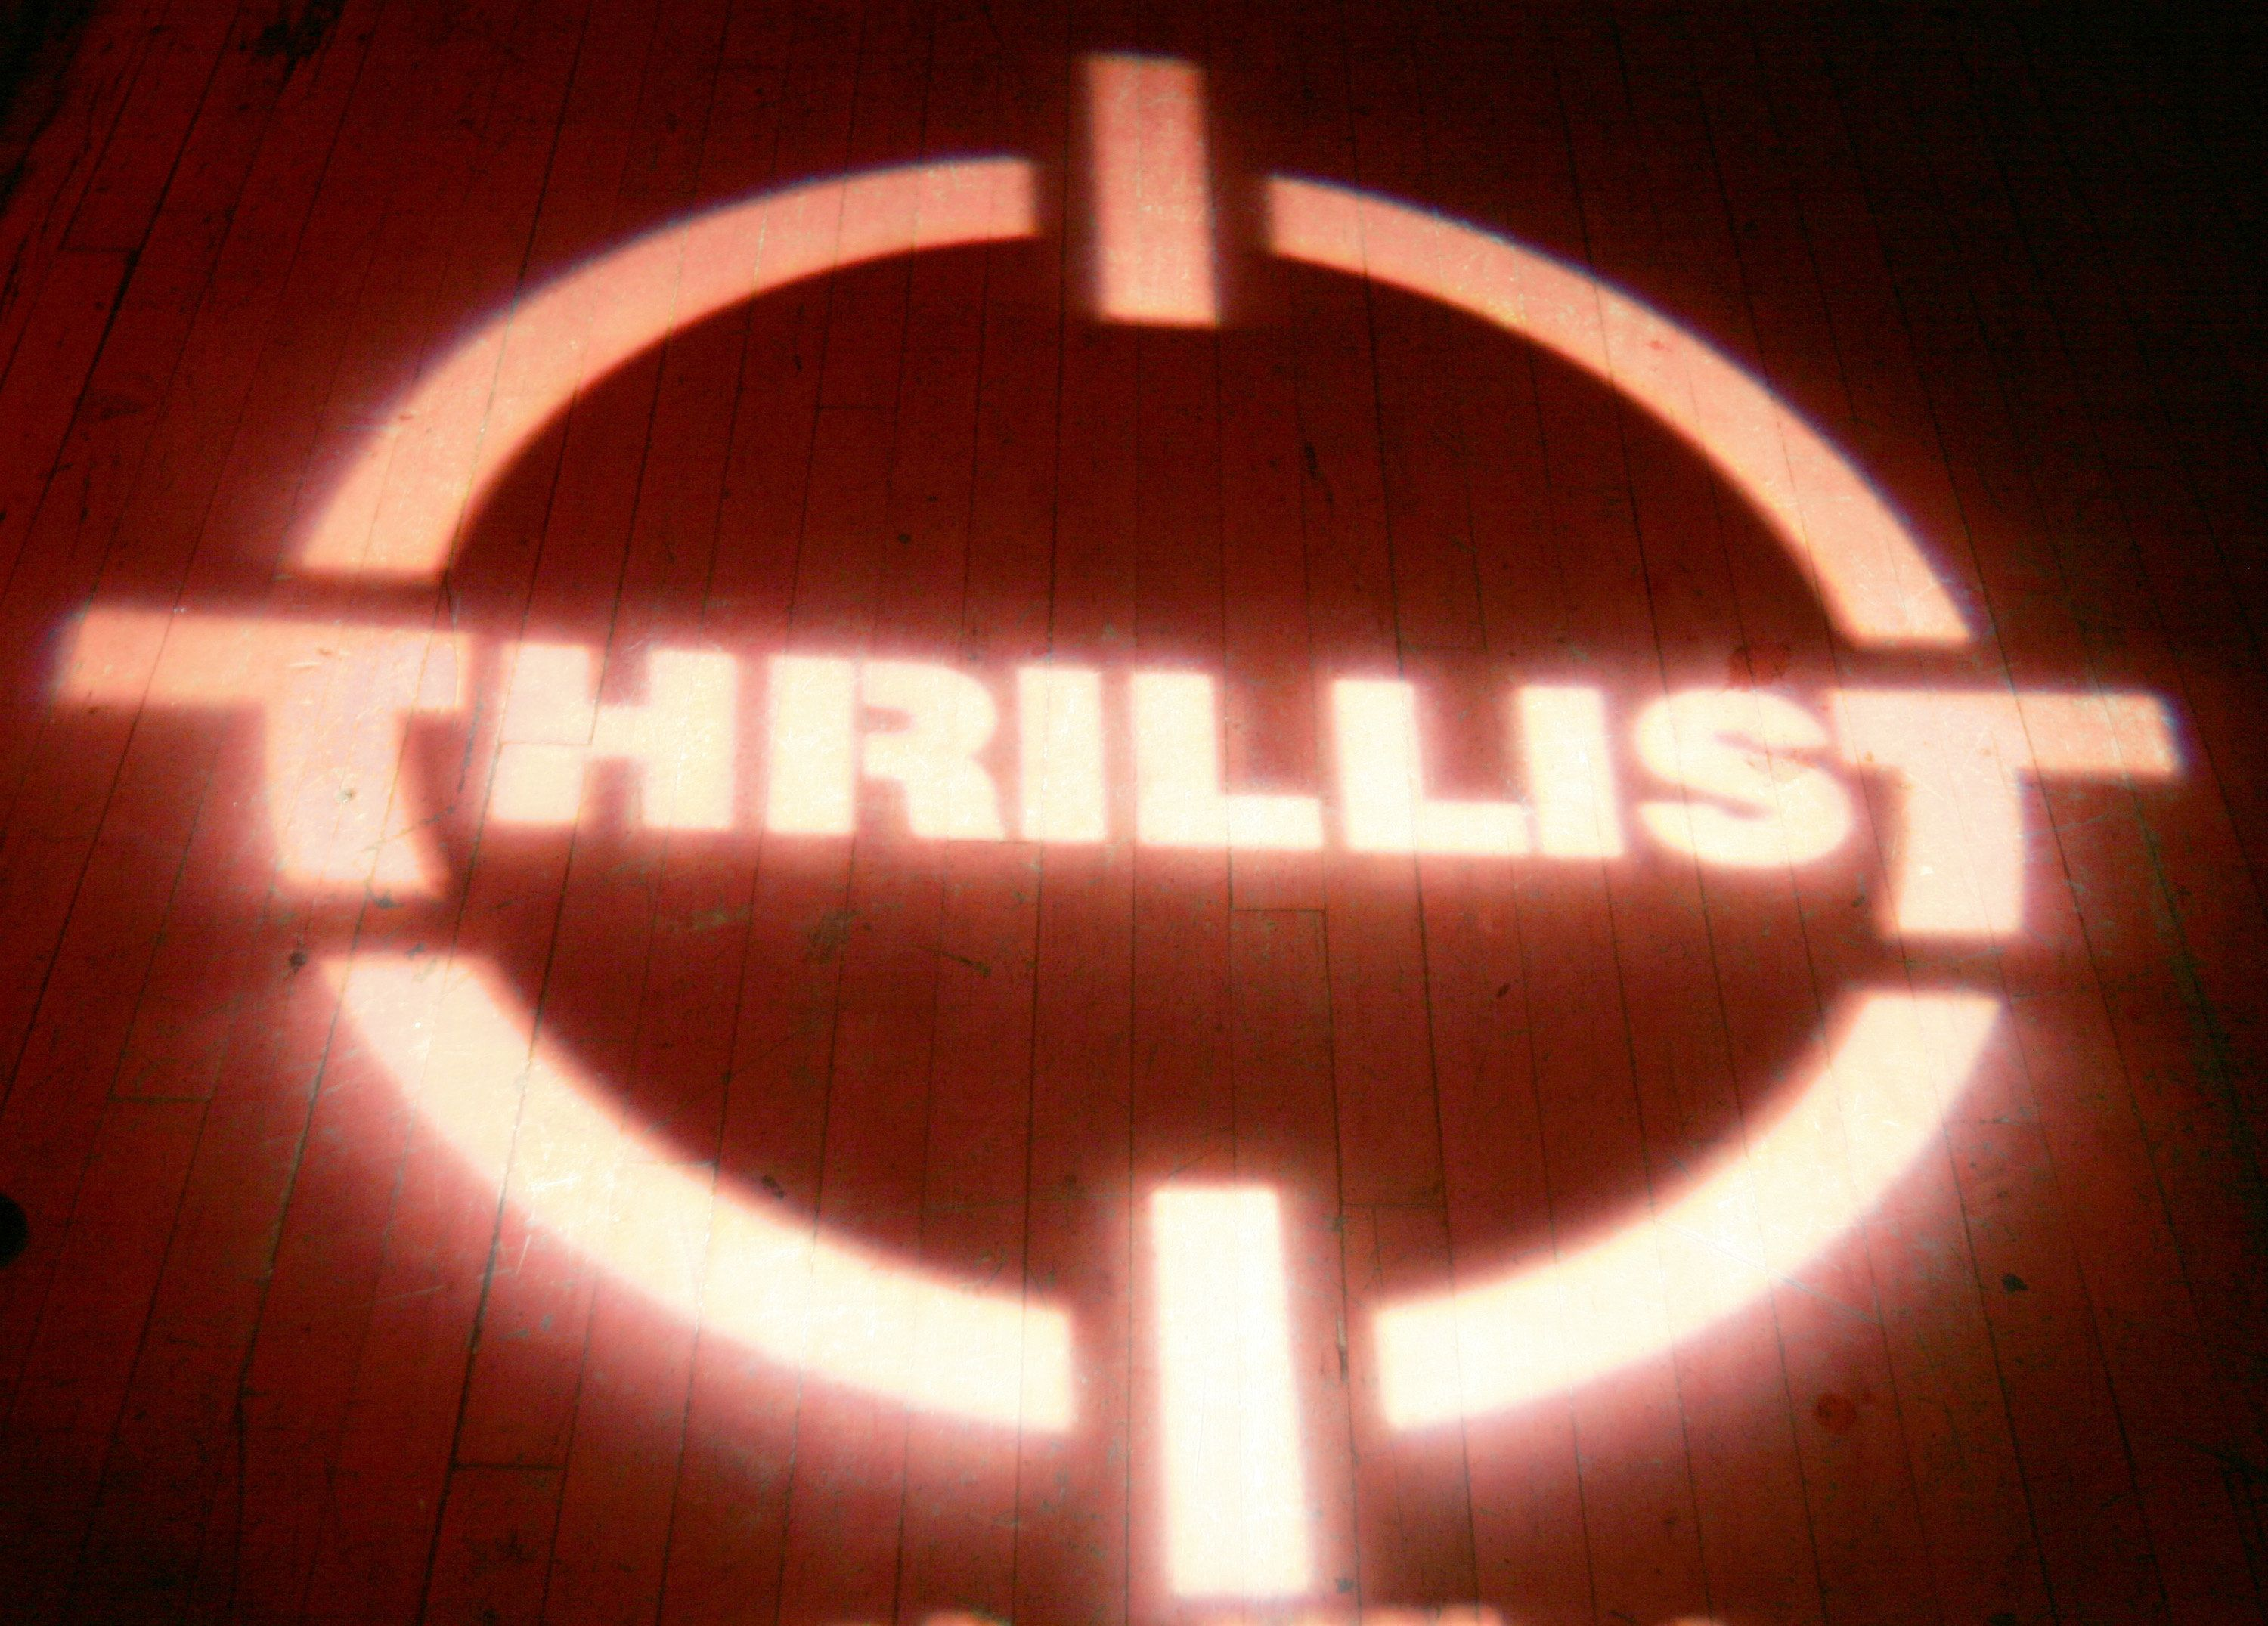 Thrillist Union Members' Work Accounts Deactivated During Walkout